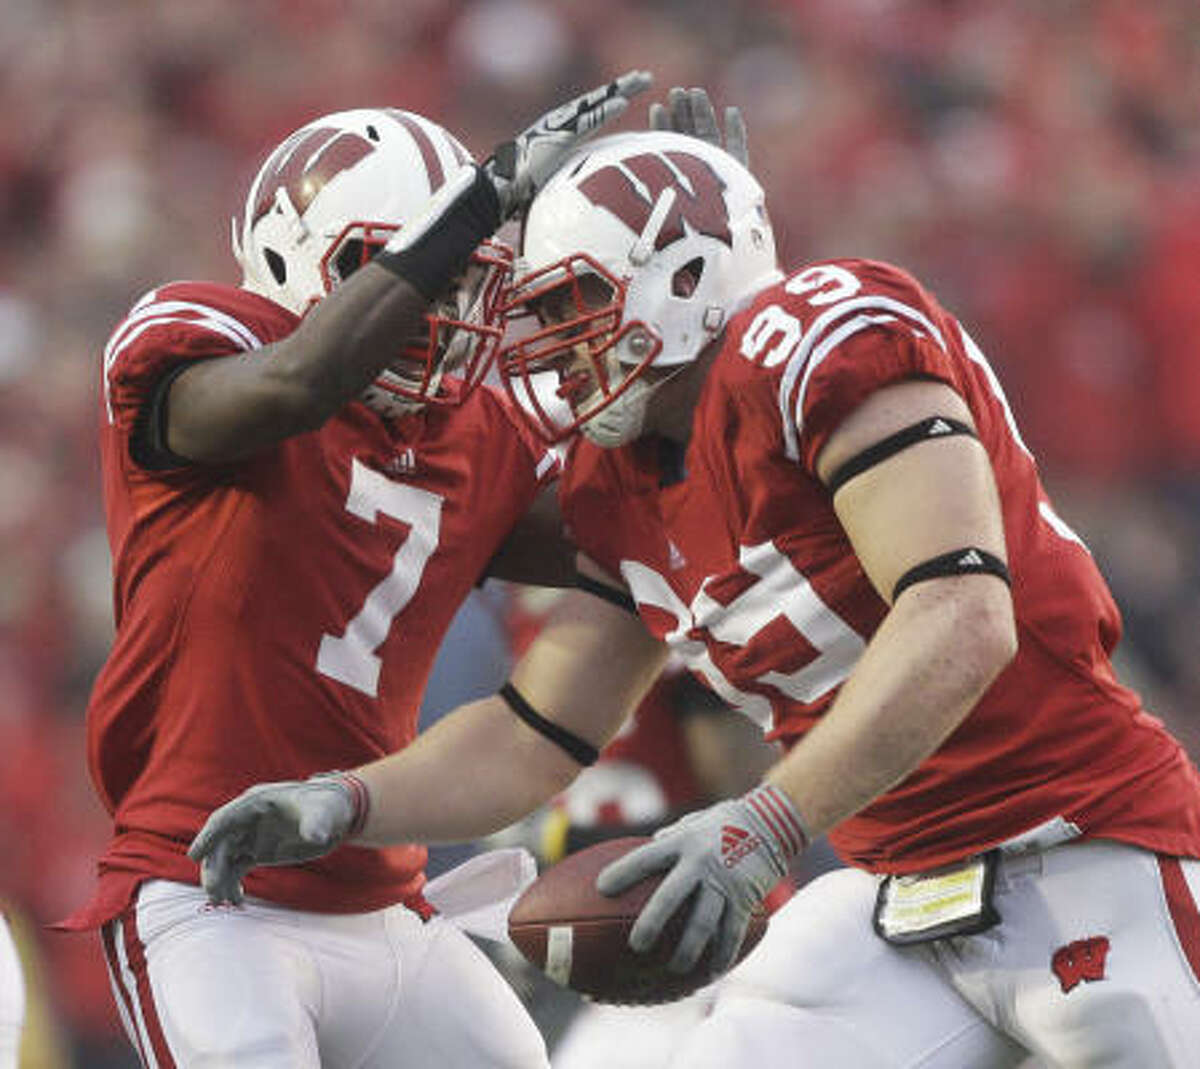 Watt, right, led Wisconsin in tackles for losses, sacks (seven), quarterback hurries, forced fumbles and blocked kicks. He was second on the team in tackles with 59. He also knocked down 13 passes in two years.